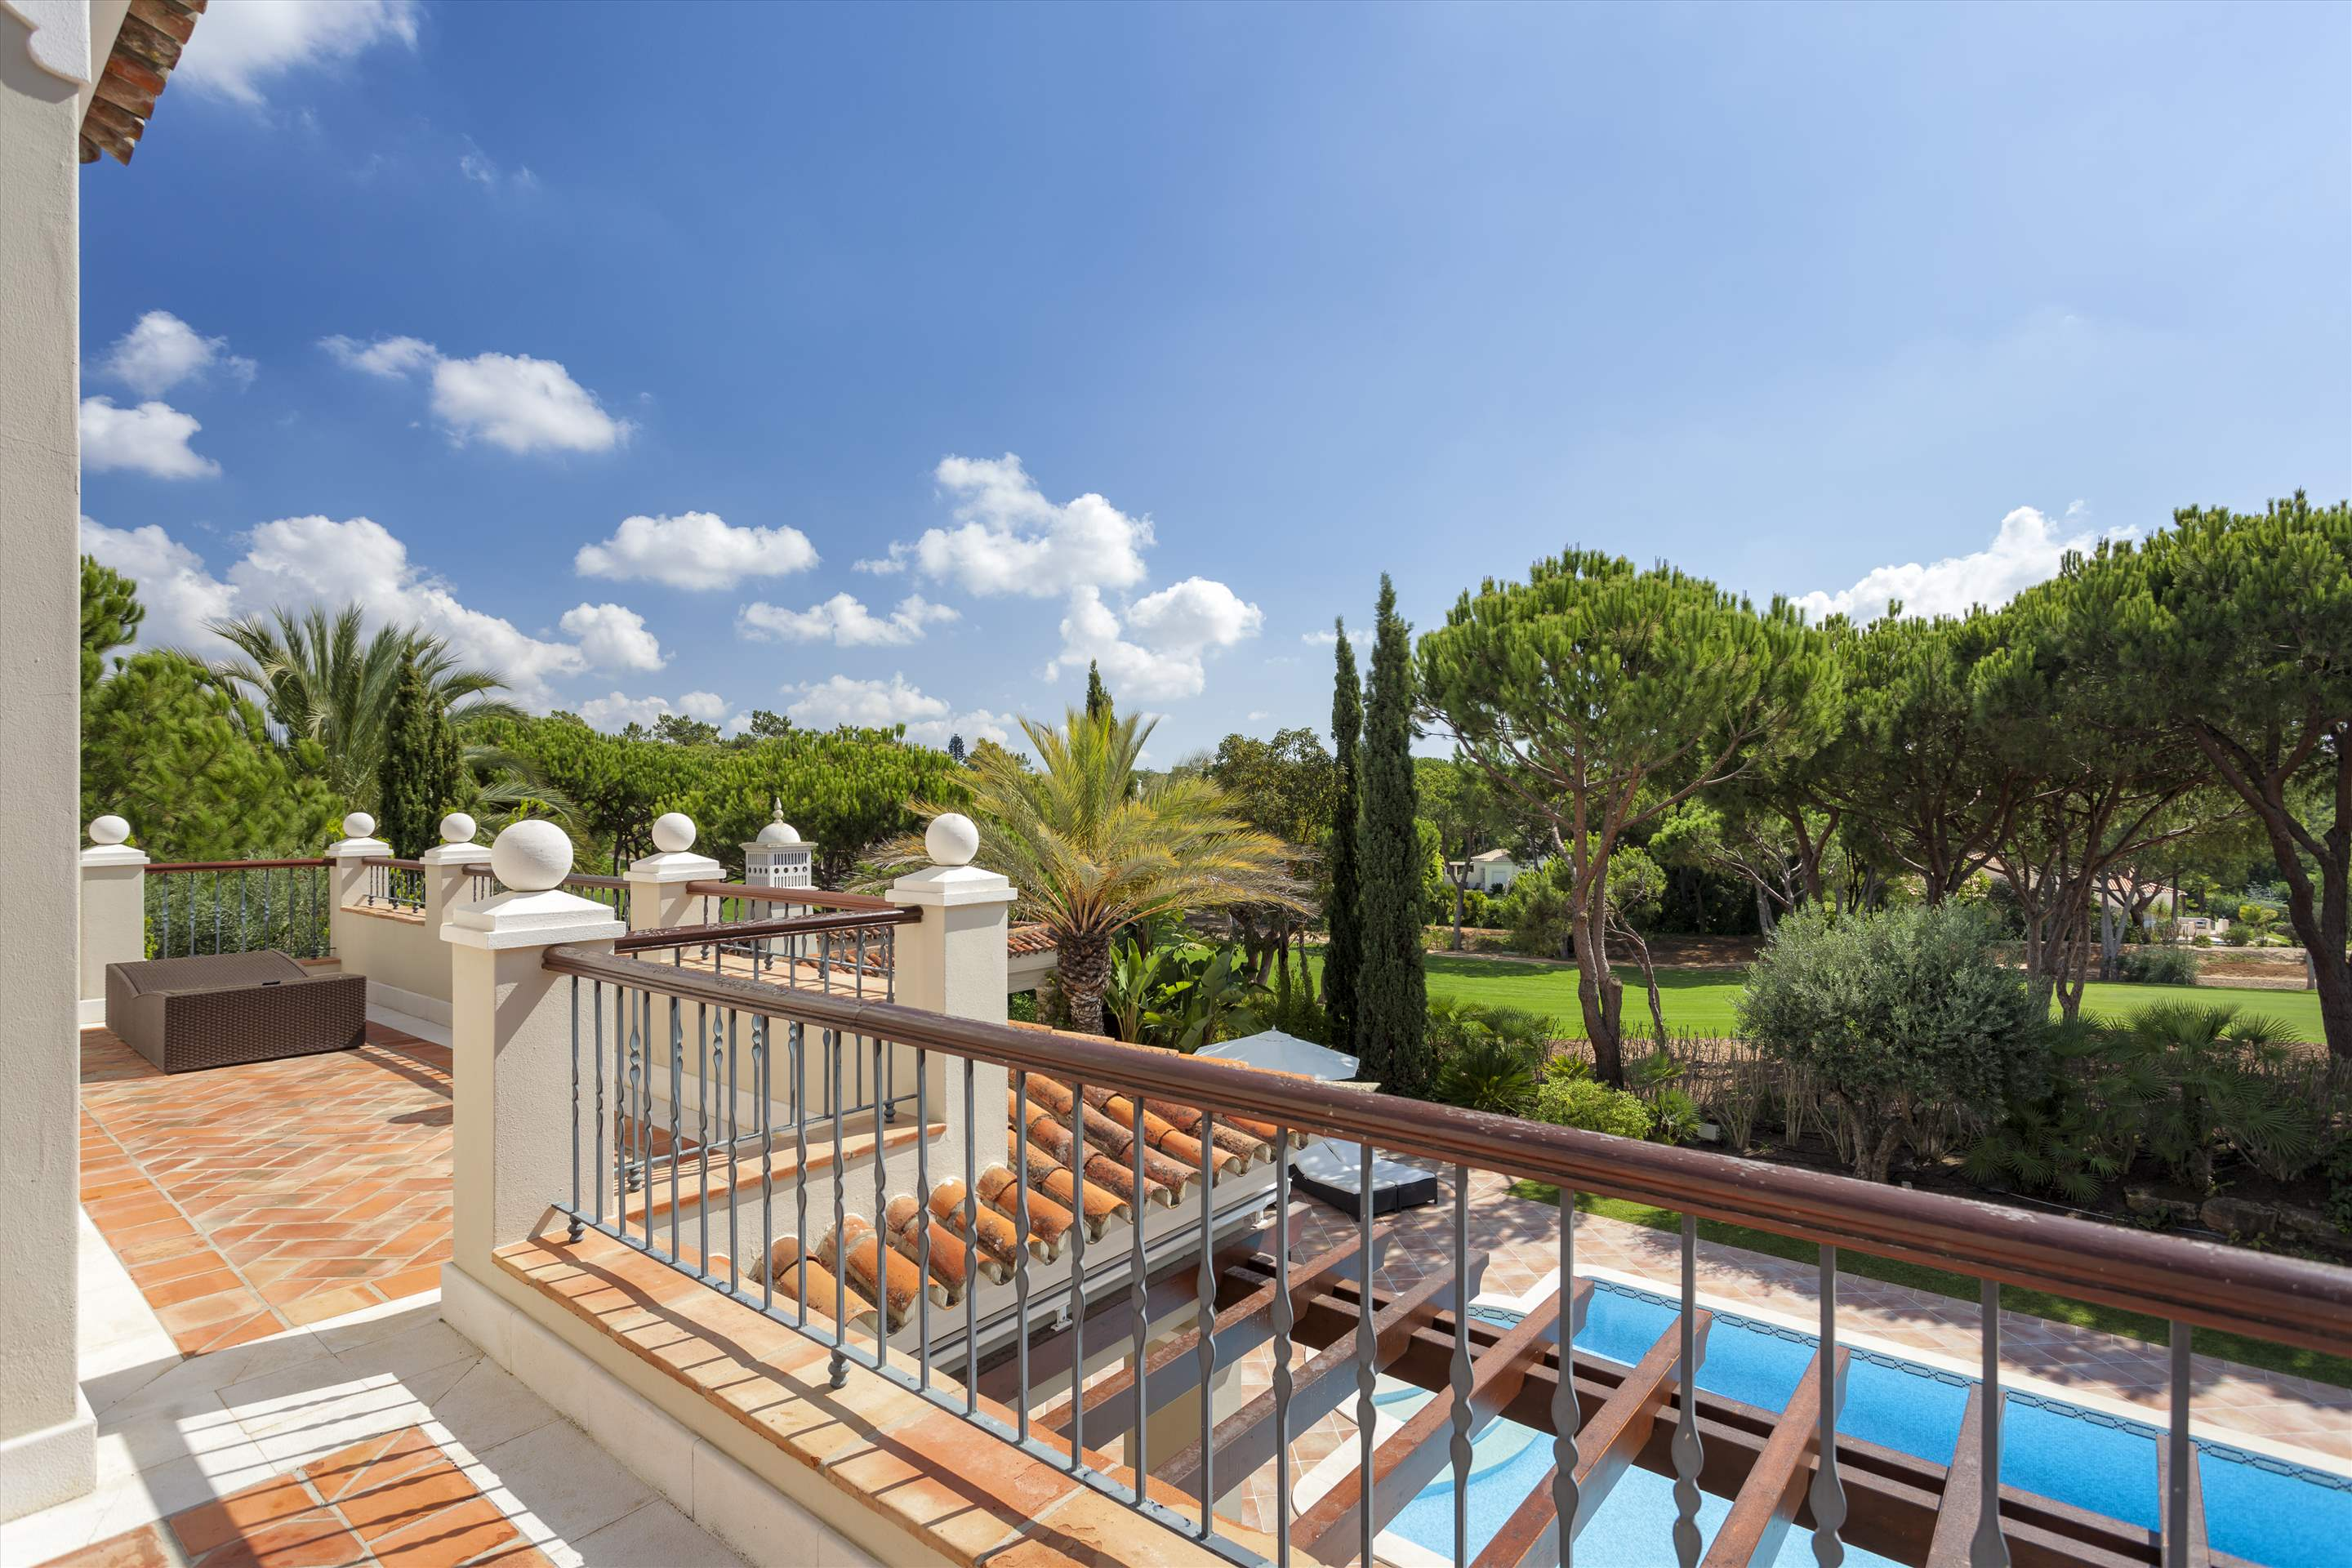 Villa Campainha, 4 Bedroom Rental, 4 bedroom villa in Quinta do Lago, Algarve Photo #23